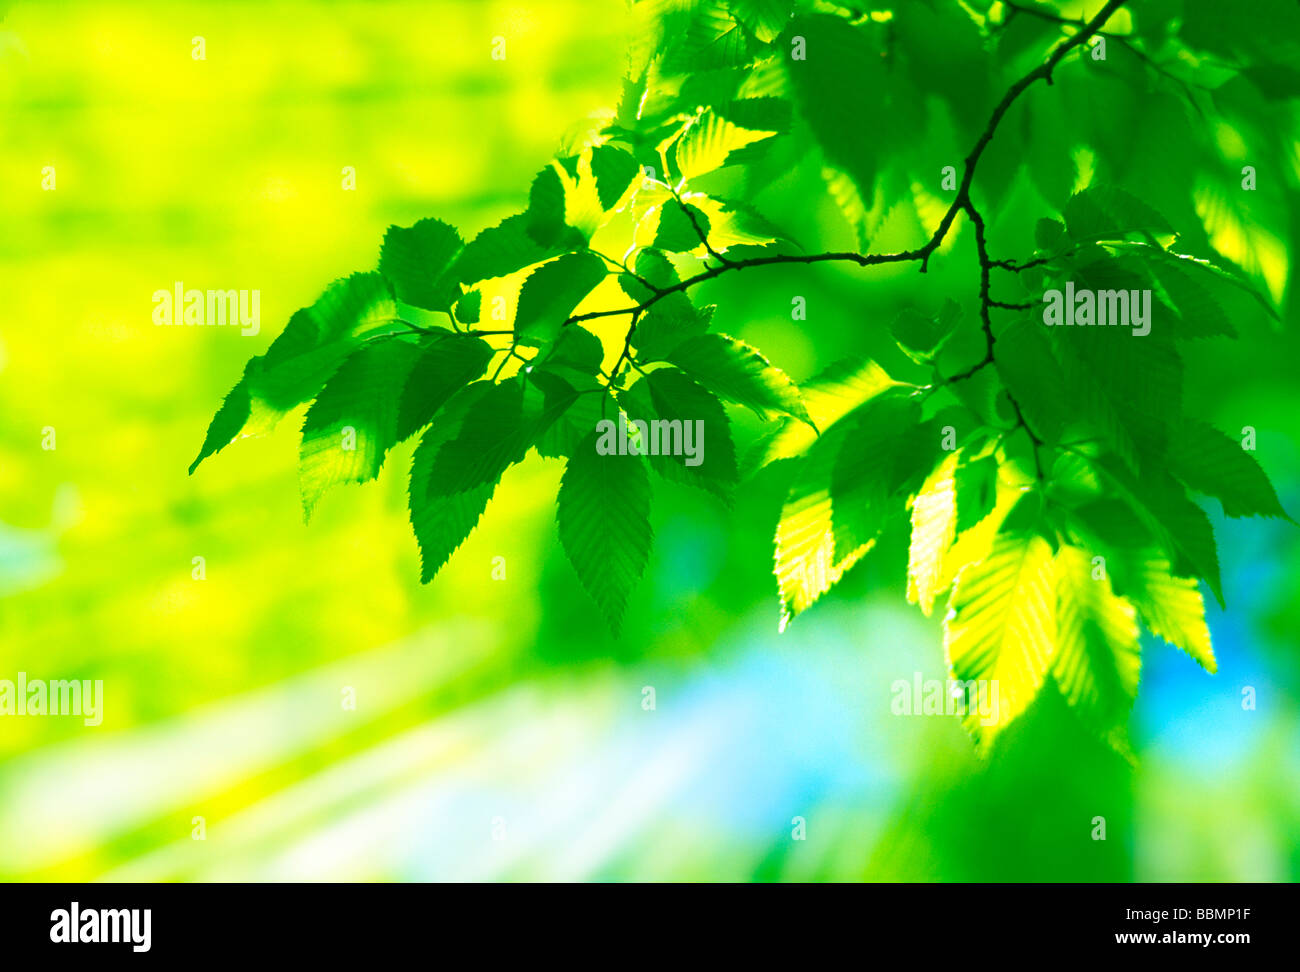 Close-up of leaves with lush greenness (digital composite) - Stock Image